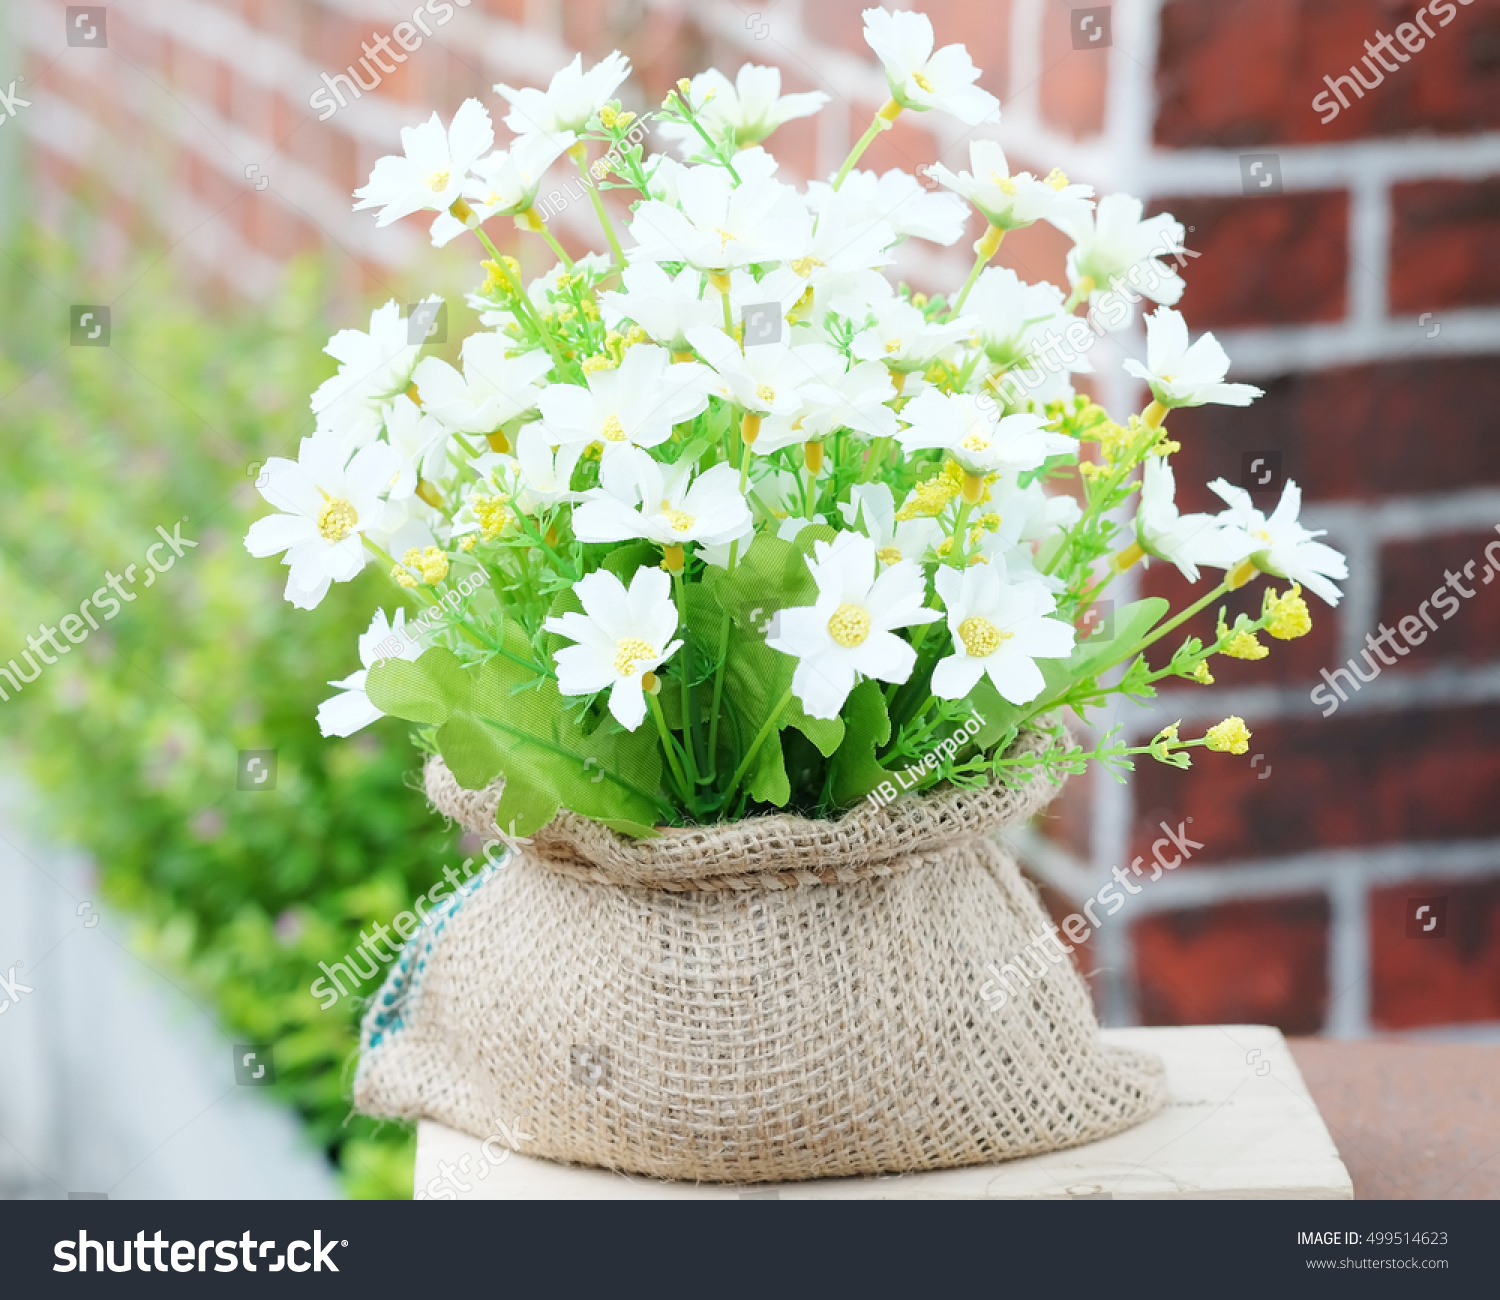 Beautiful Artificial Flowers Stock Photo Royalty Free 499514623